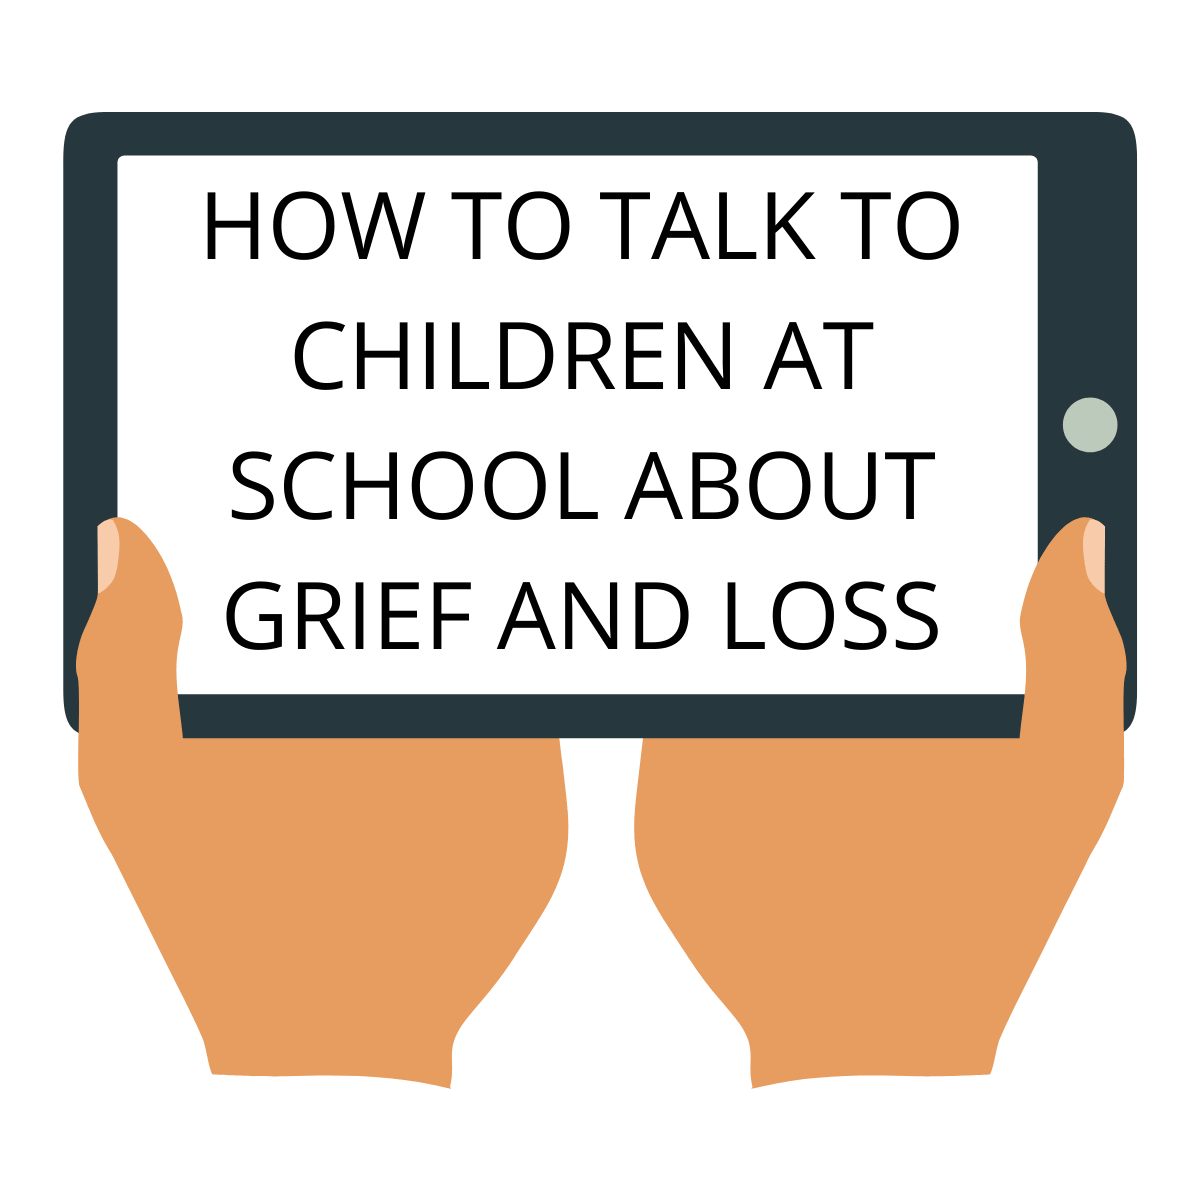 How to Talk to Children at School about Grief and Loss